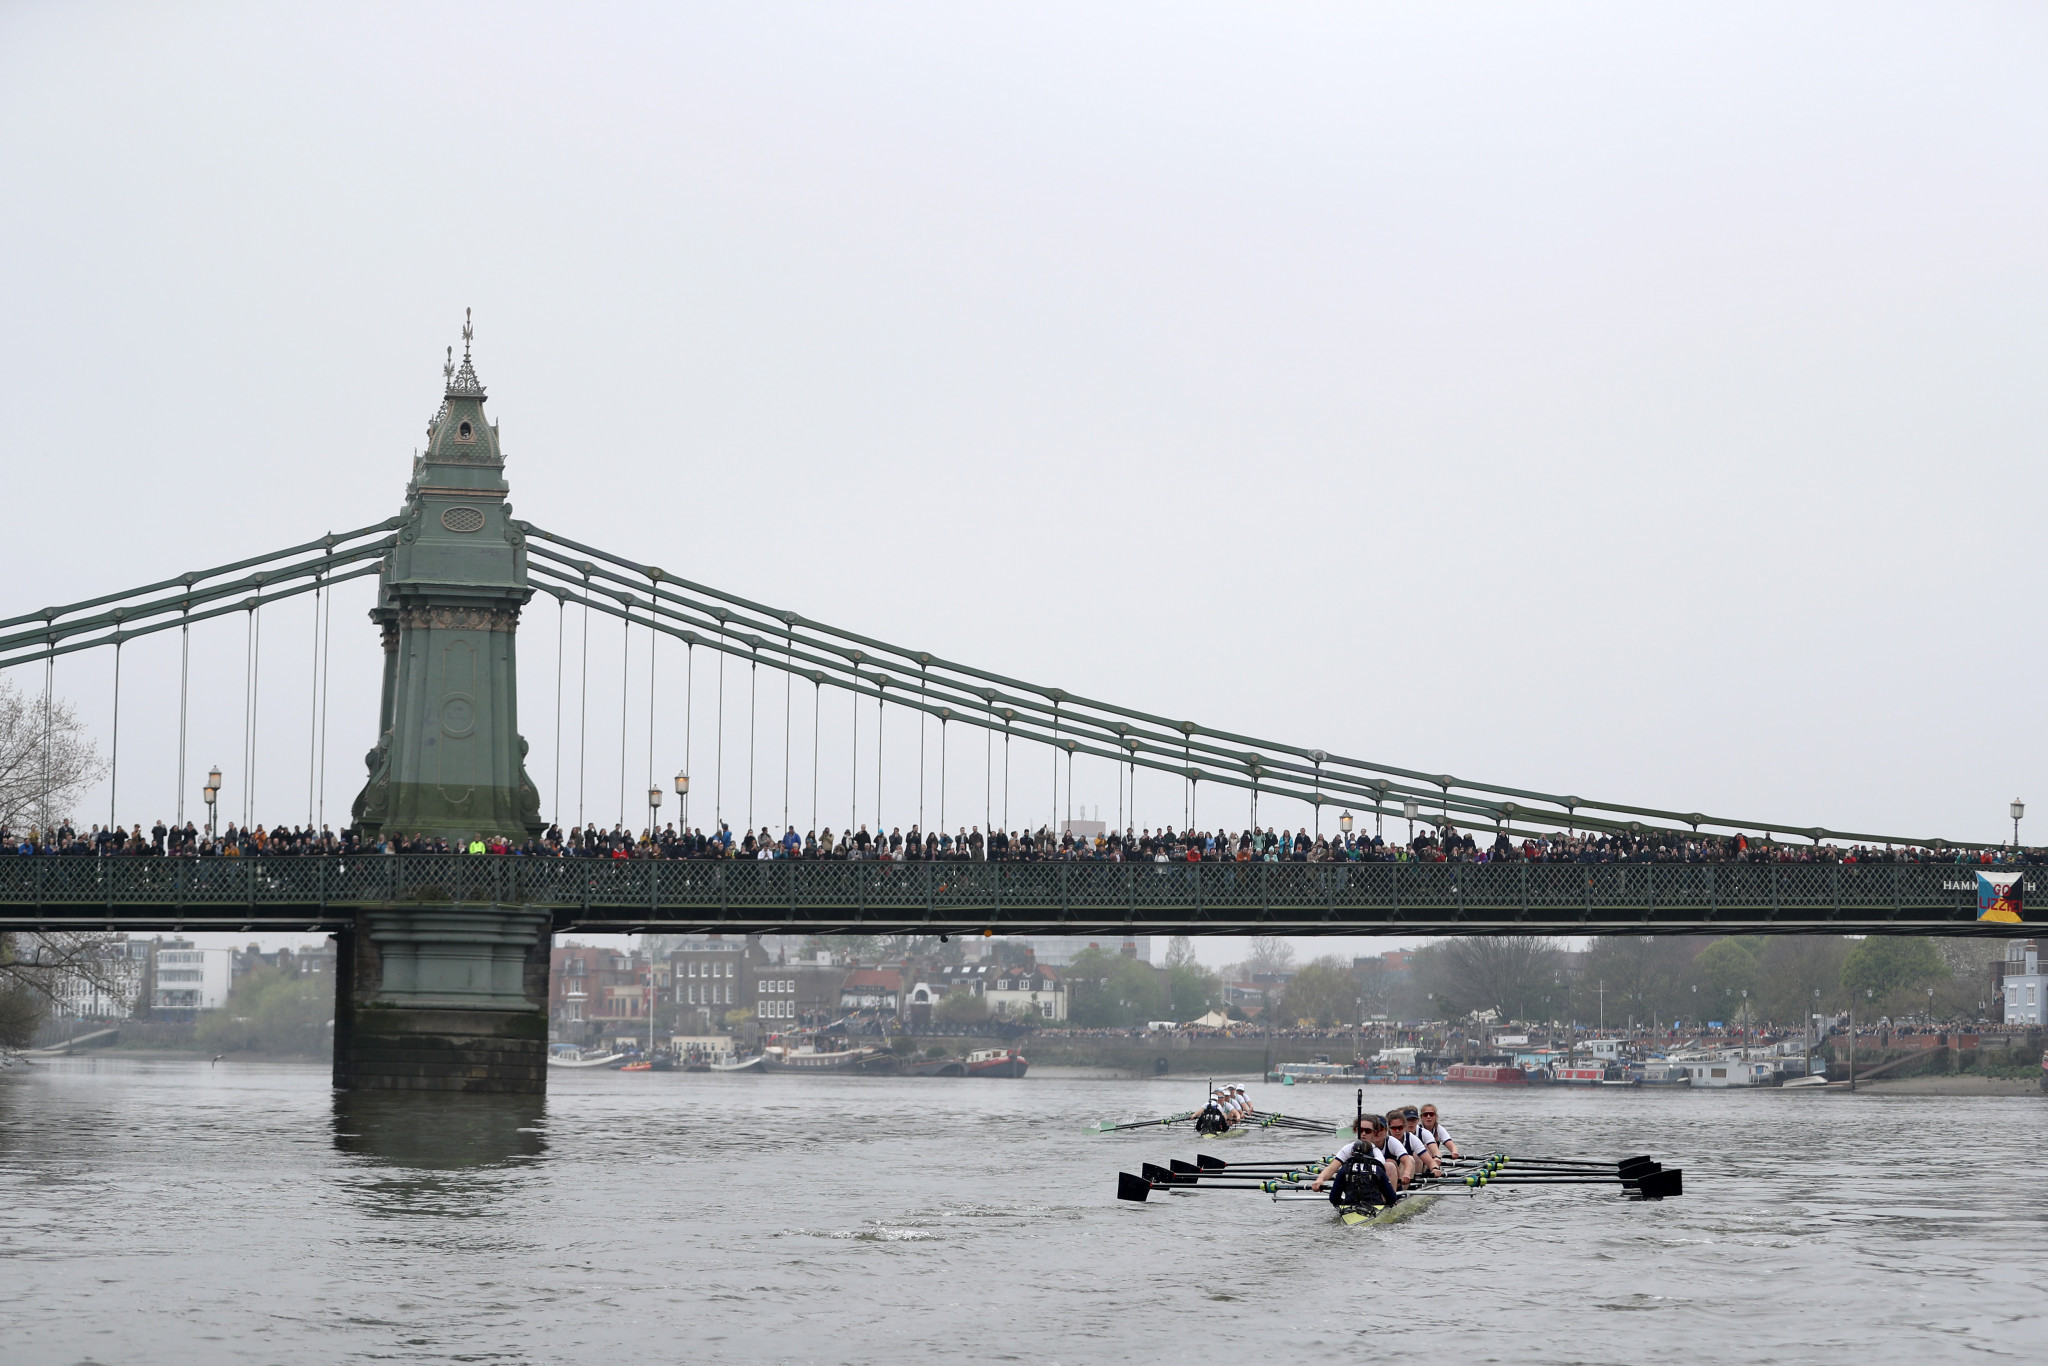 Uncertainty around the safety and navigation of Hammersmith Bridge was a reason behind the relocation of the Boat Race to Ely ©Getty Images